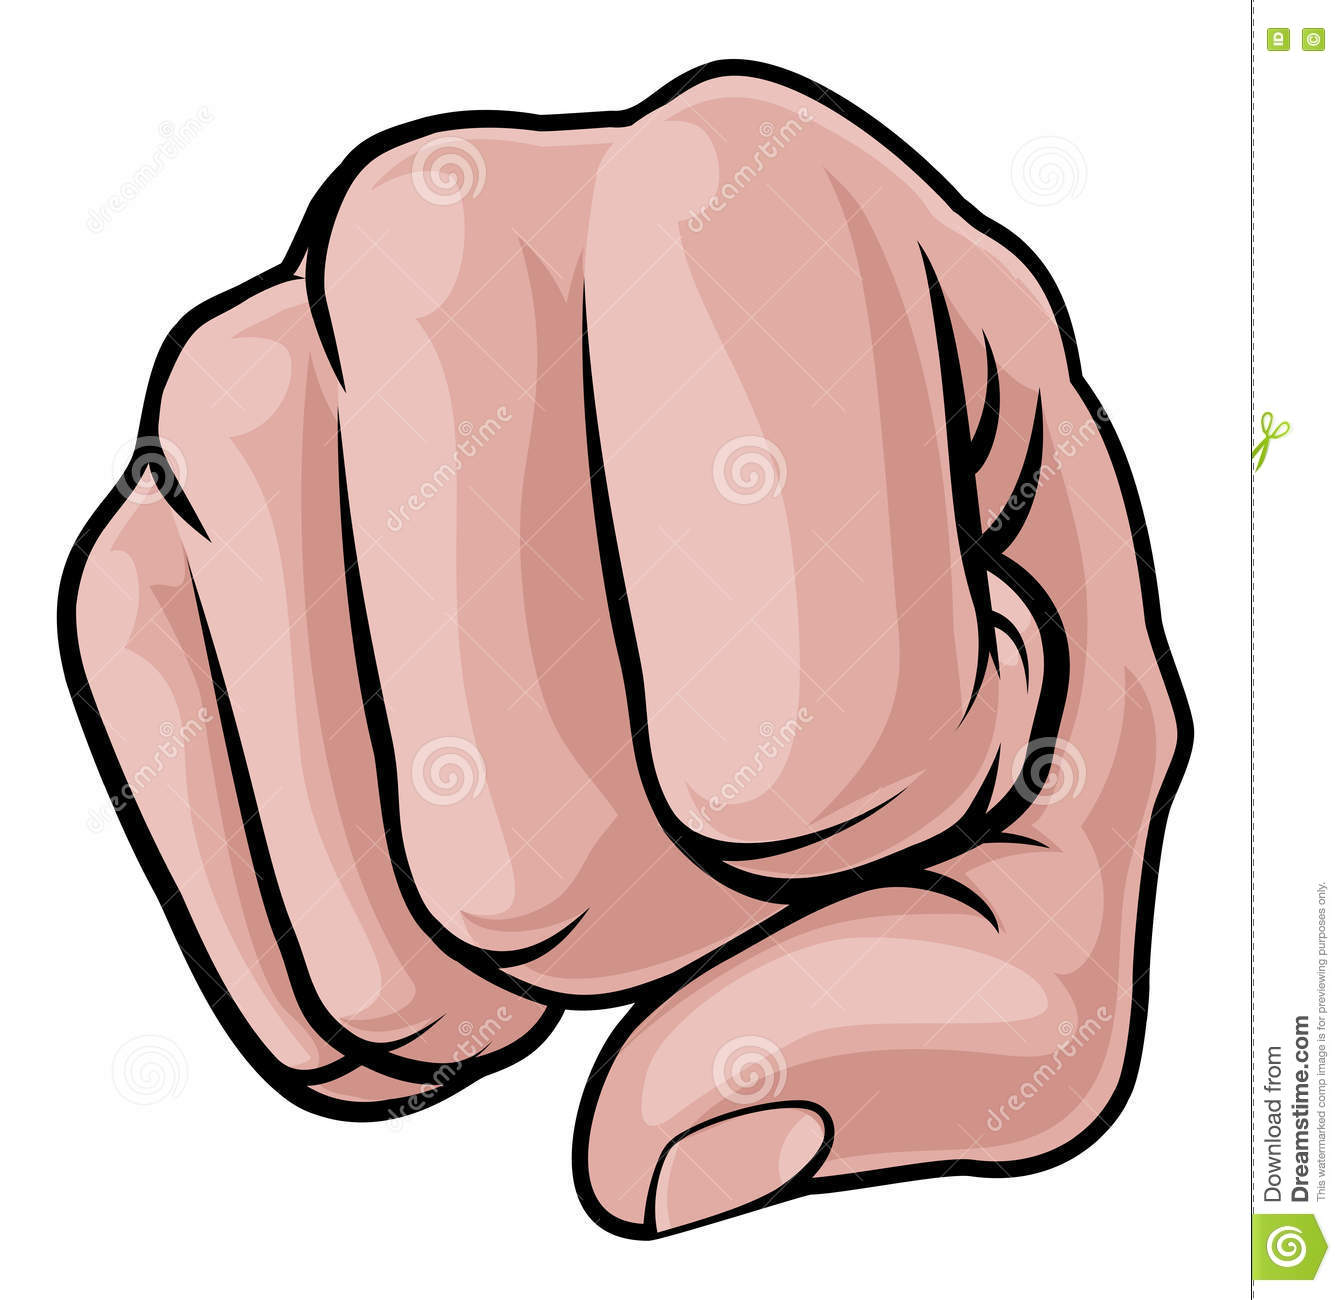 1341x1300 Fist Clipart Knuckle